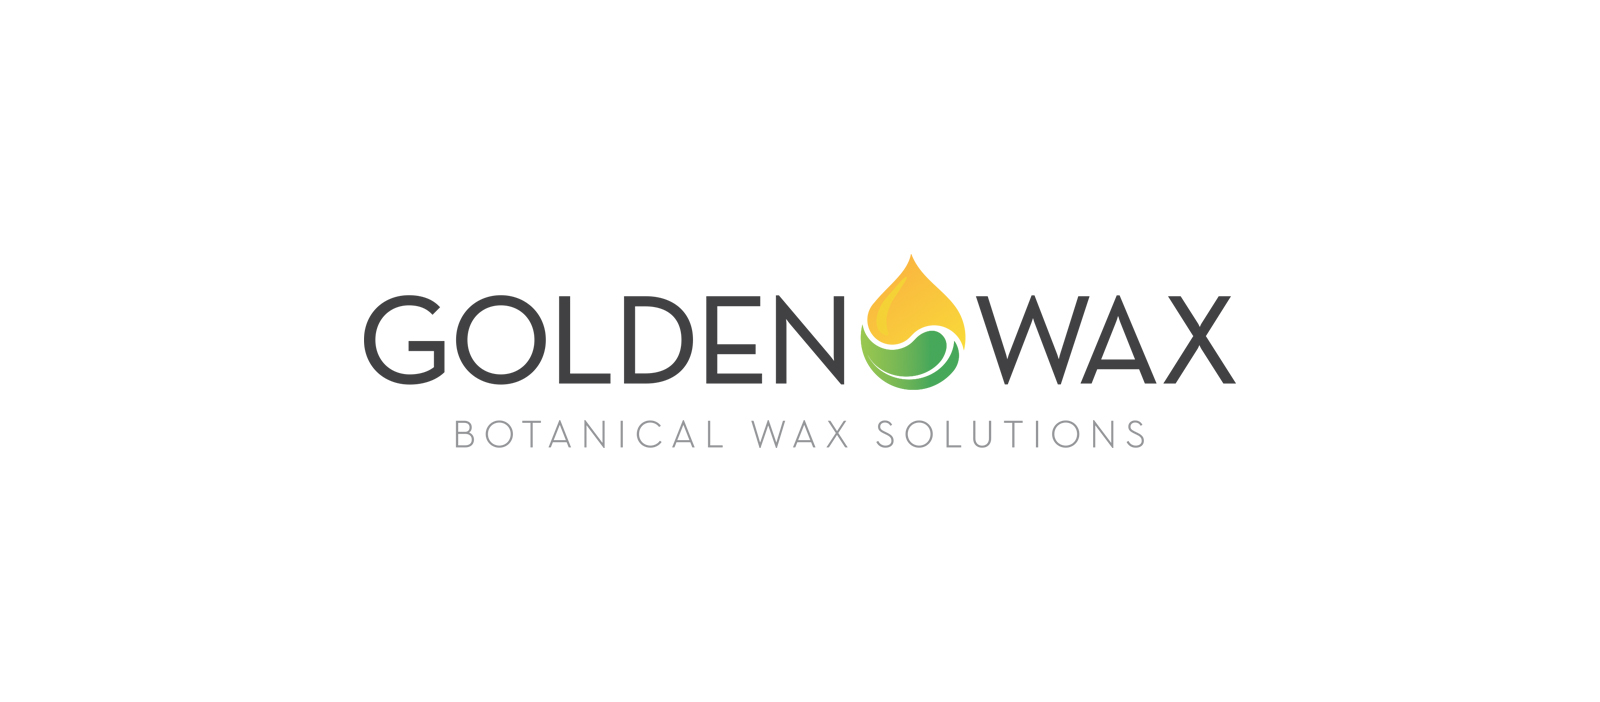 Golden Wax Botanical Wax Solutions logo